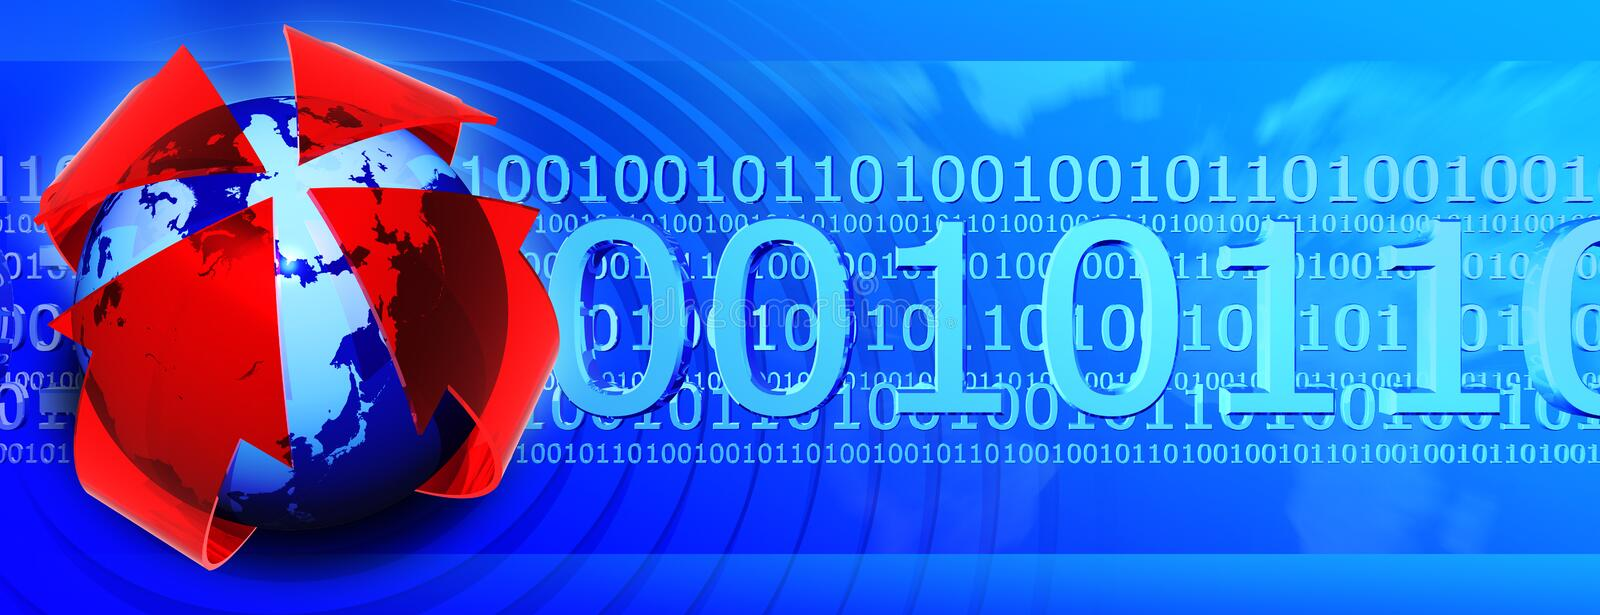 Binary code banner. Presentation banner with globe and binary code 0101, check my other renders and make sure your content filter is OFF stock illustration